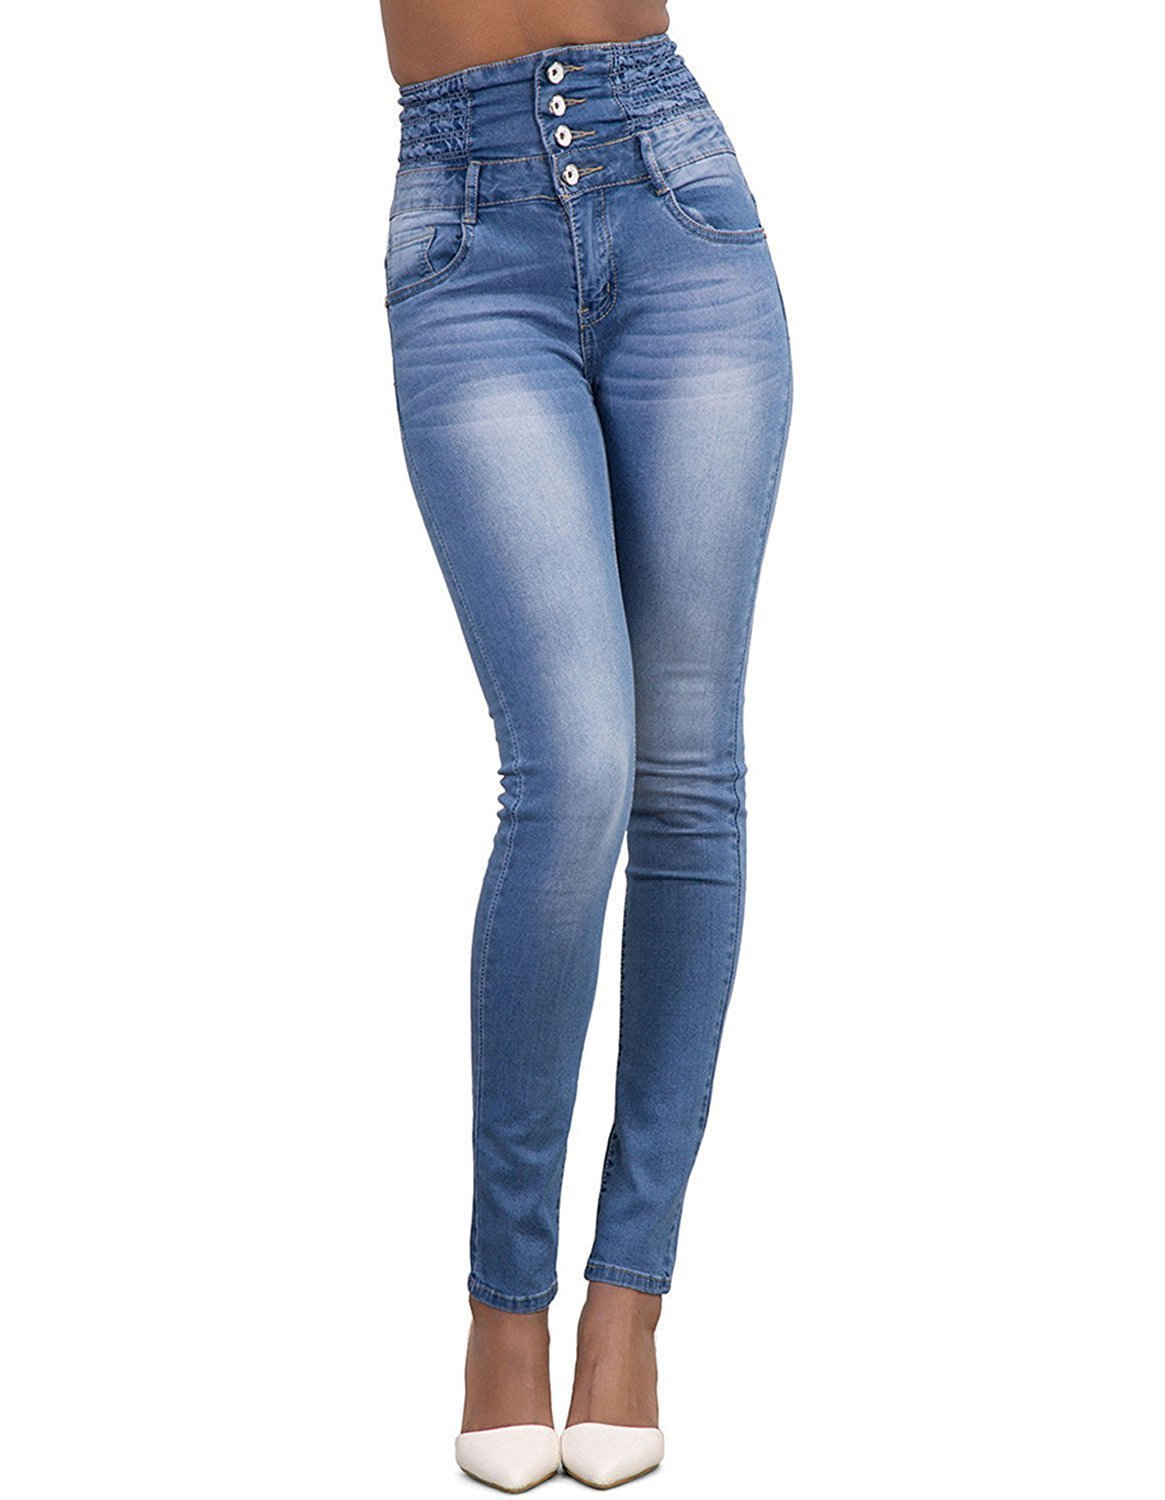 BABAKUD Women's High Waisted Skinny Stretch Jeans